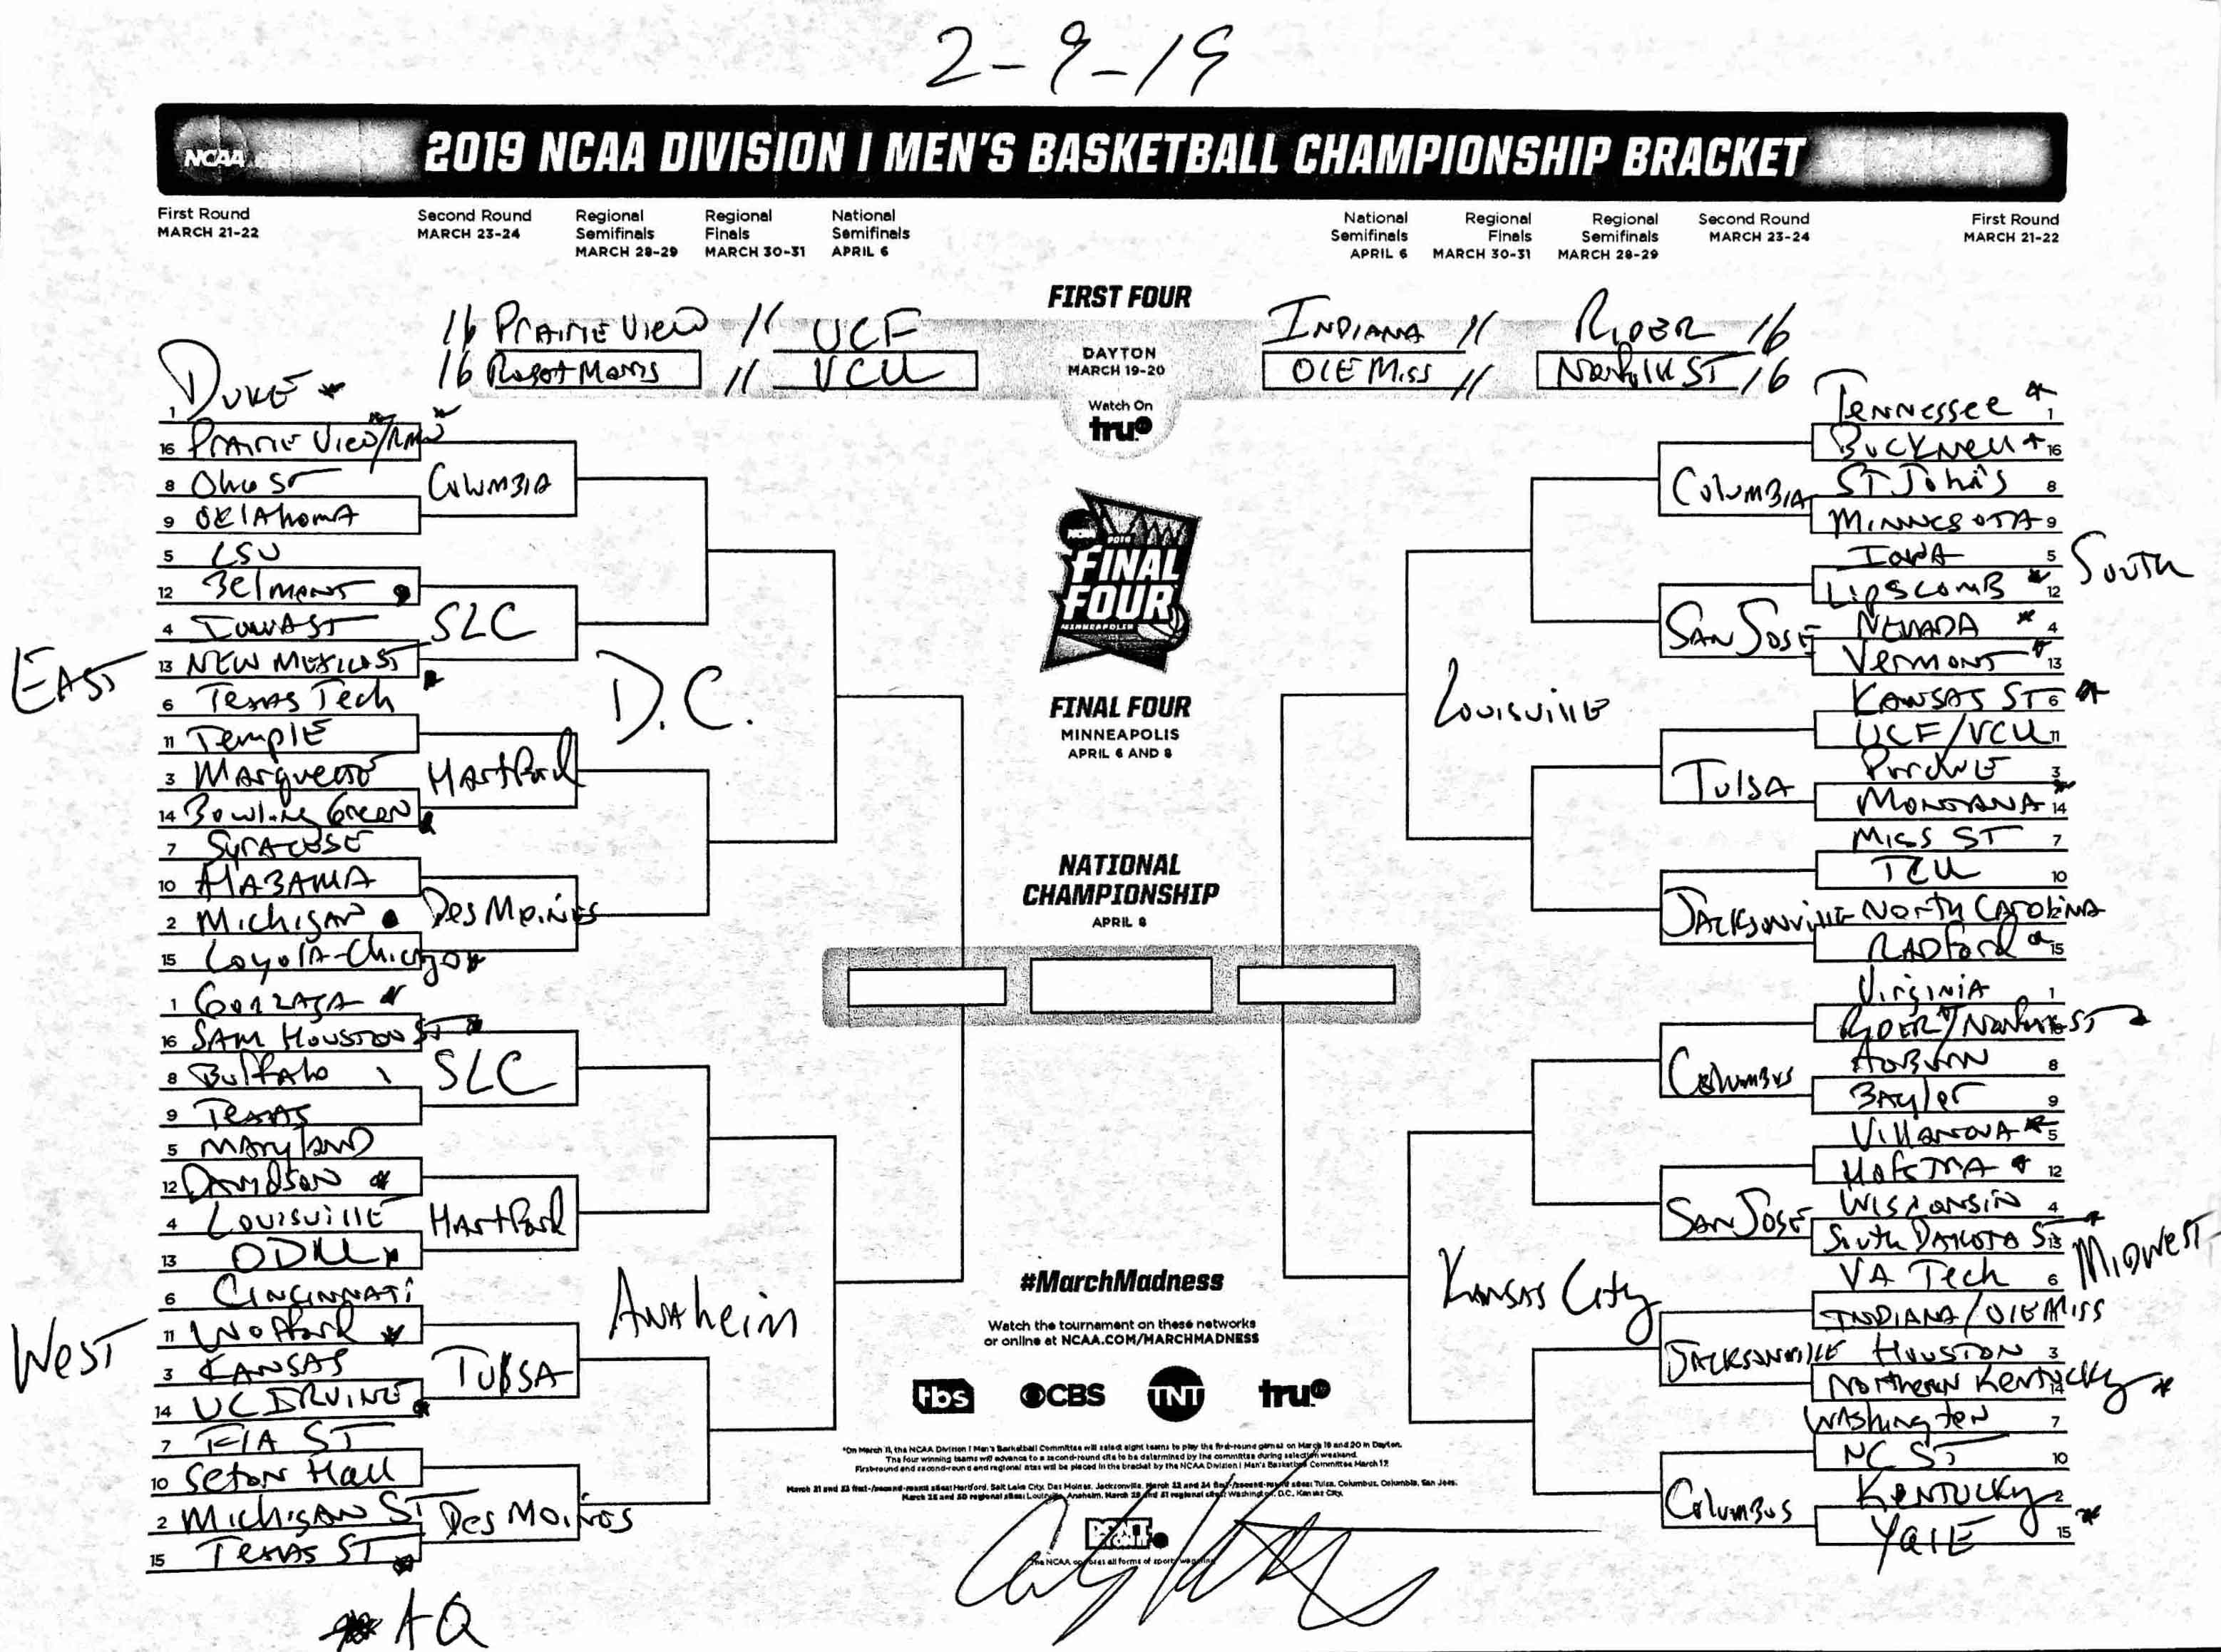 Asa Houston Calendar February 2020 The complete March Madness field of 68 predicted after the Top 16